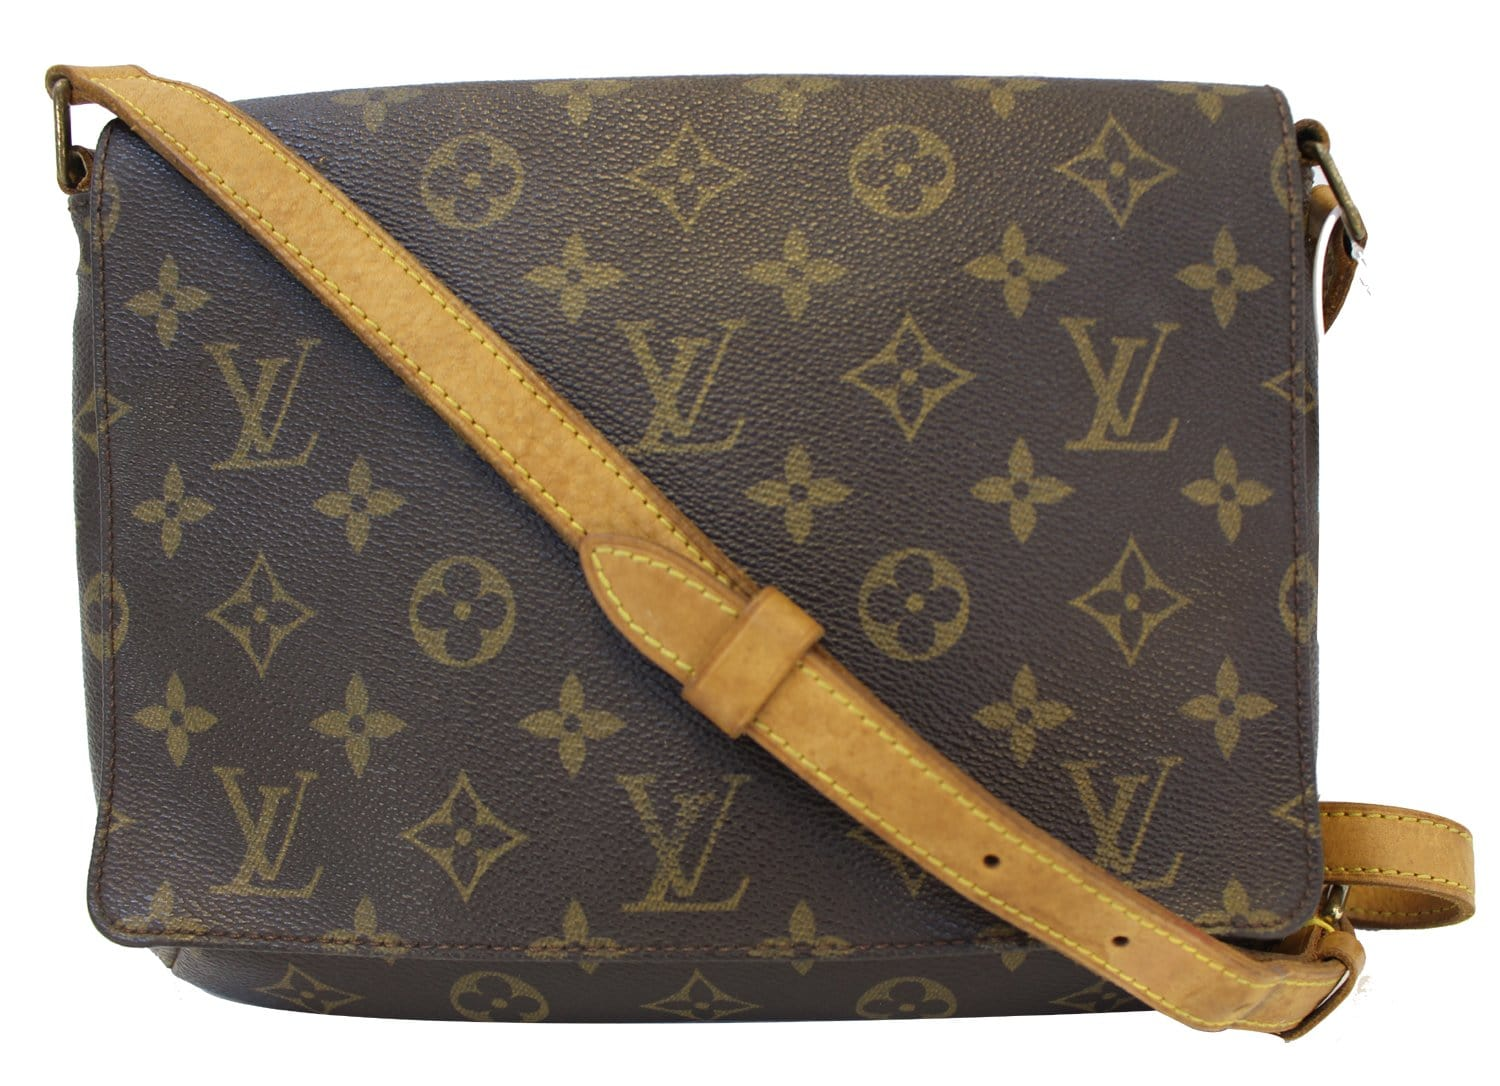 d451b9998035 Authentic LOUIS VUITTON Monogram Canvas Musette Tango Crossbody TT1550